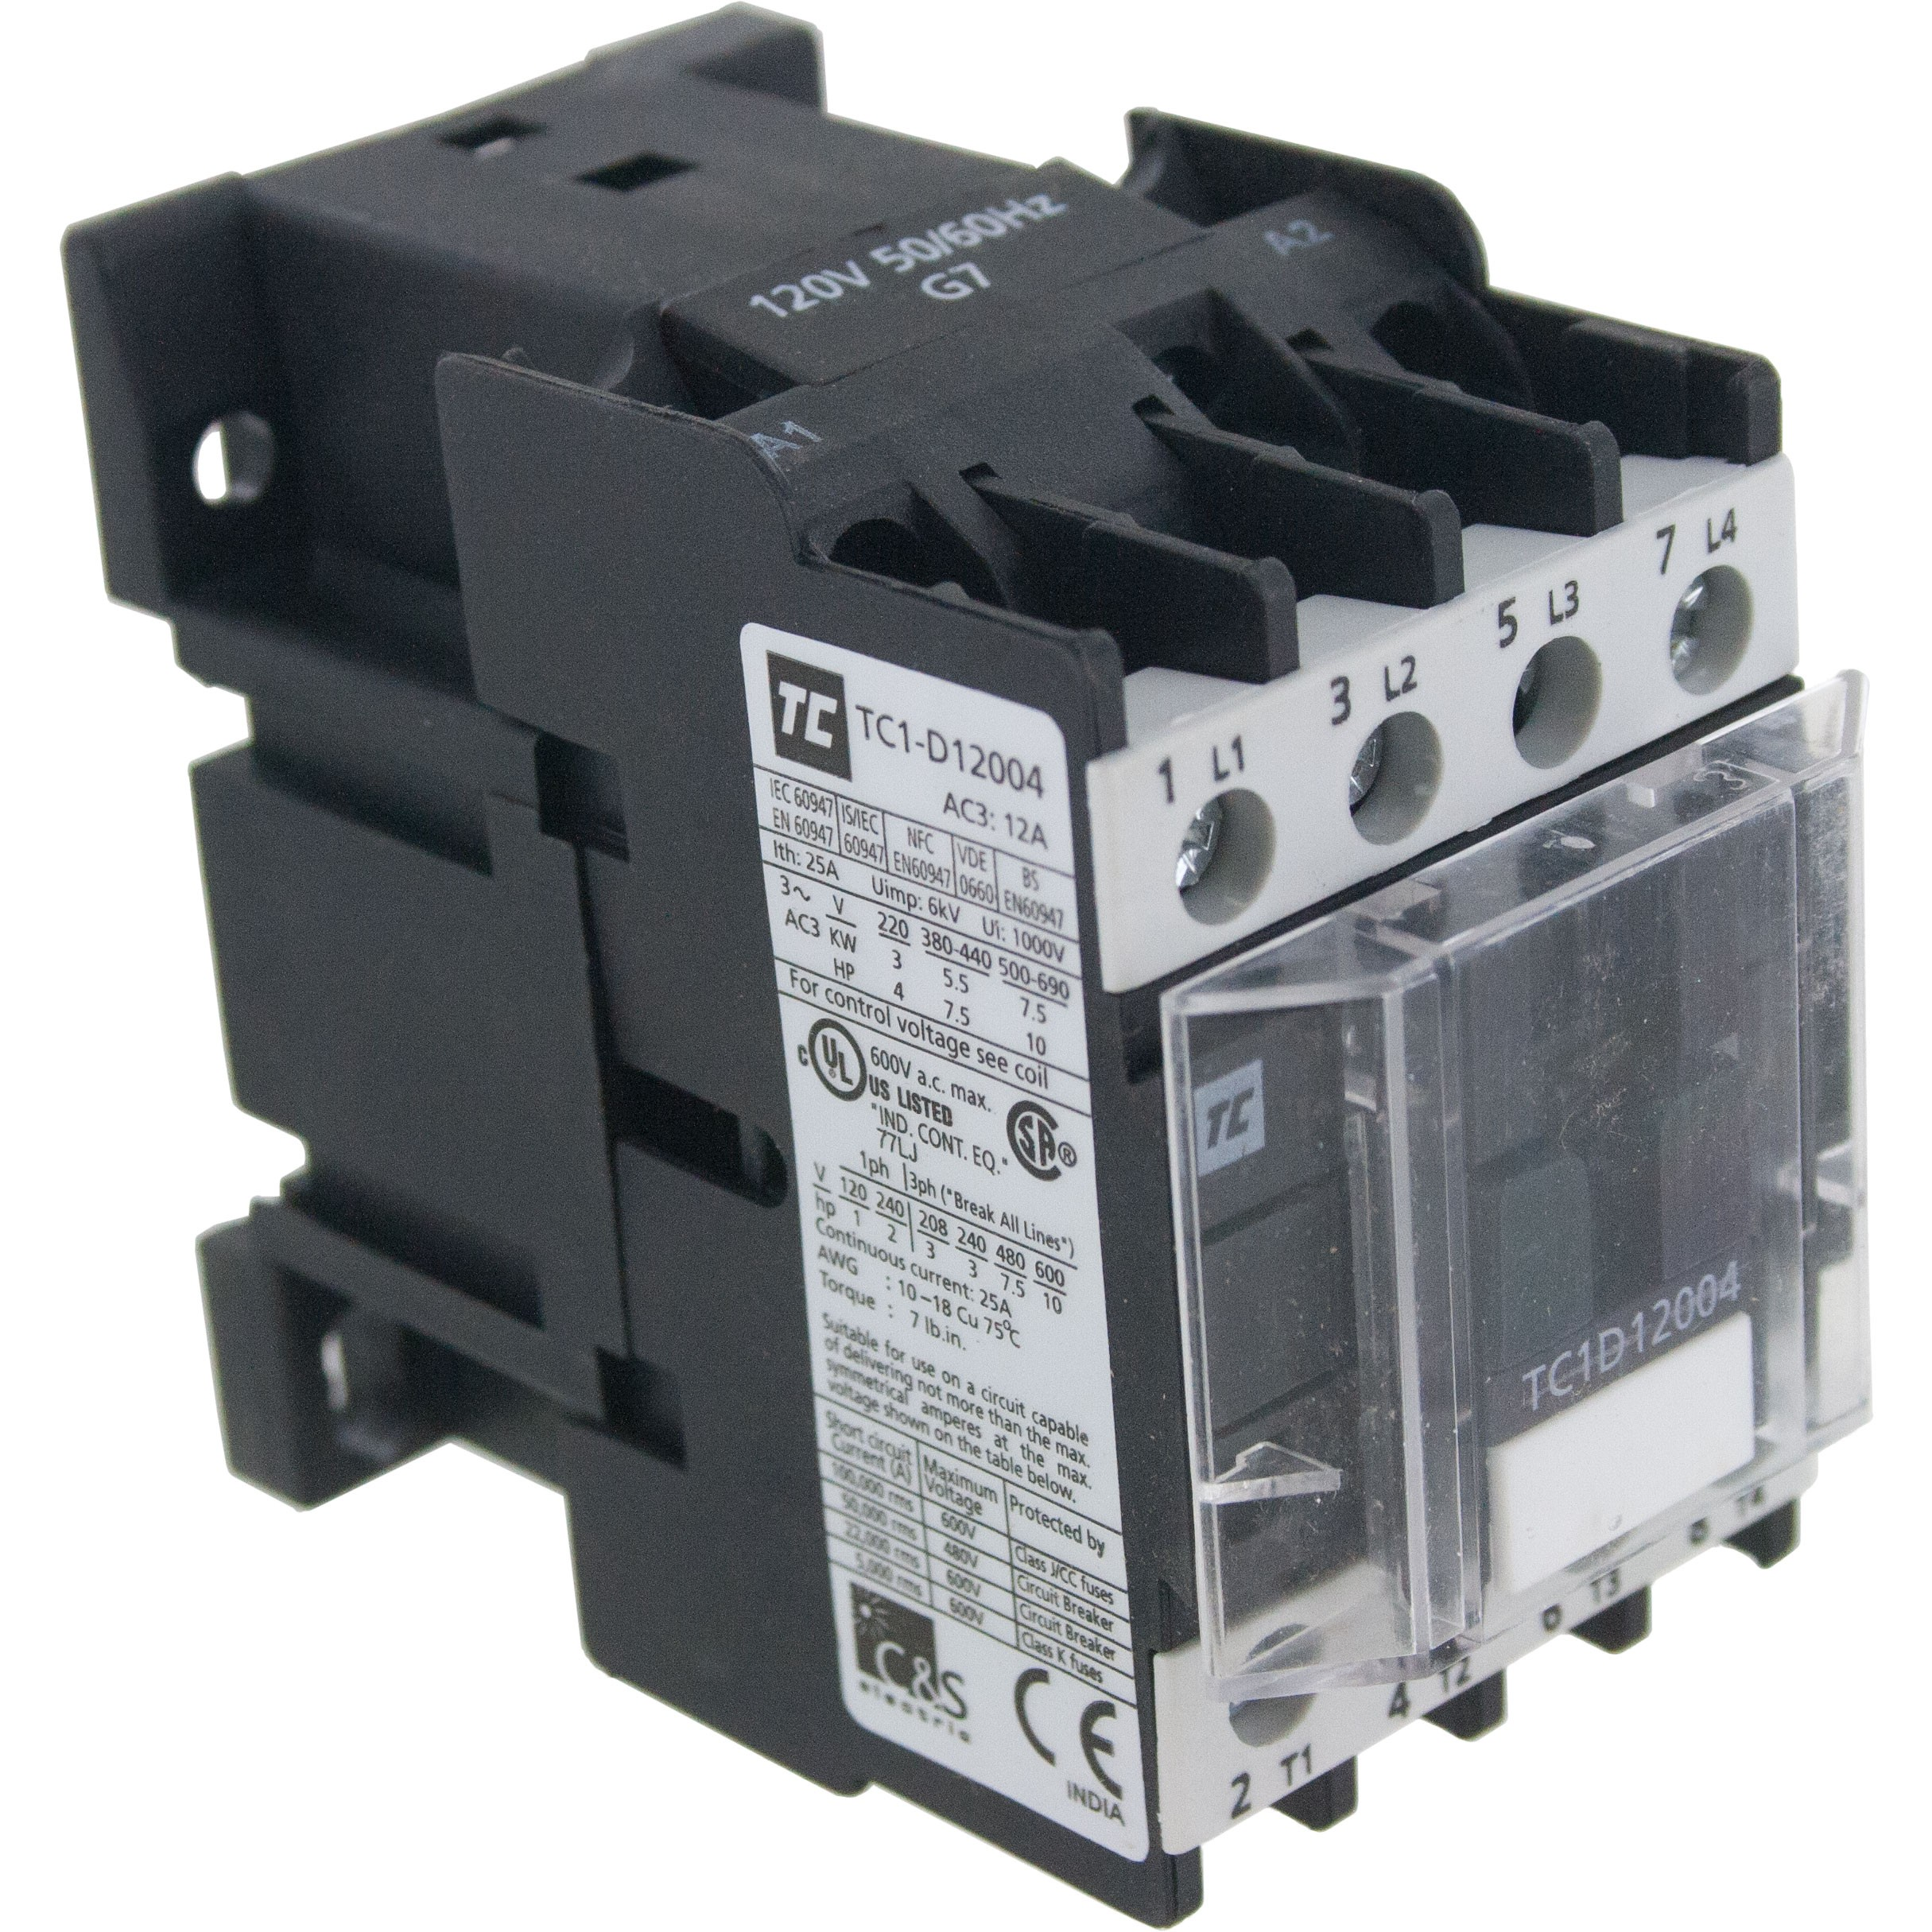 4 Pole Contactor 12 Amp 4 N/O 120 Volt AC Coil Angle